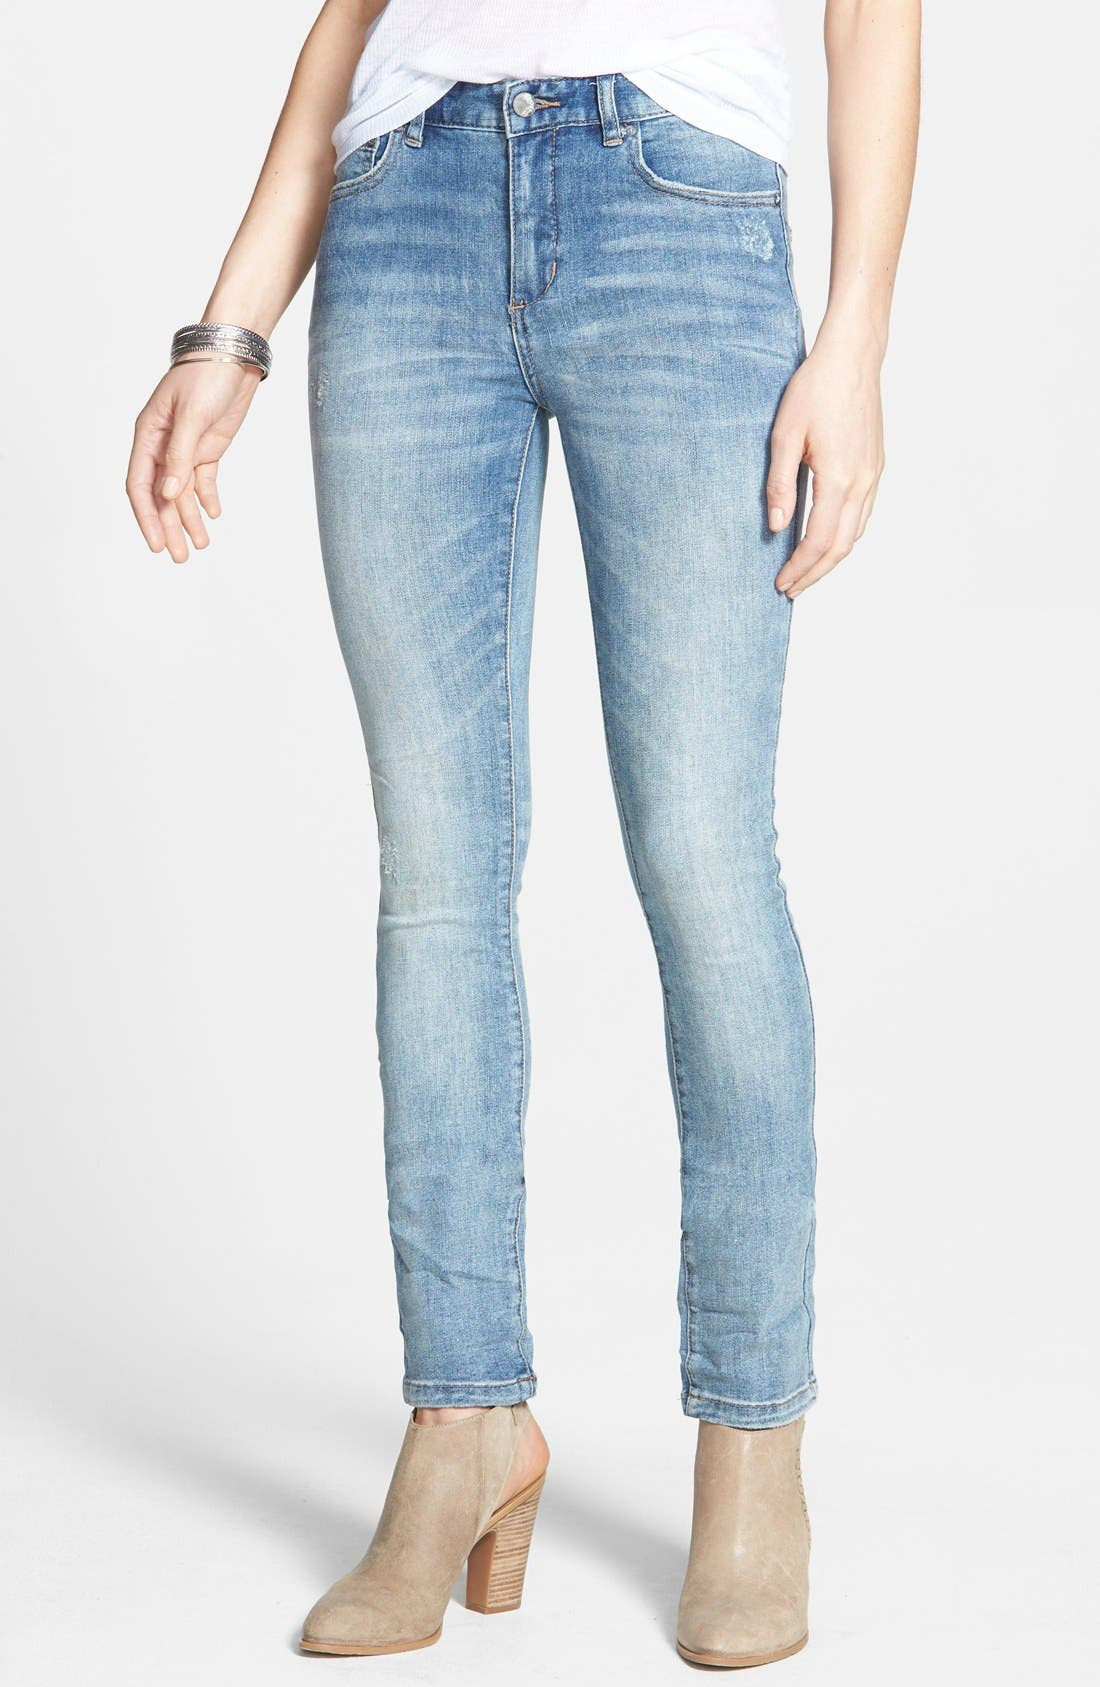 Alternate Image 1 Selected - Free People Stretch Denim Skinny Jeans (Boston Blue)